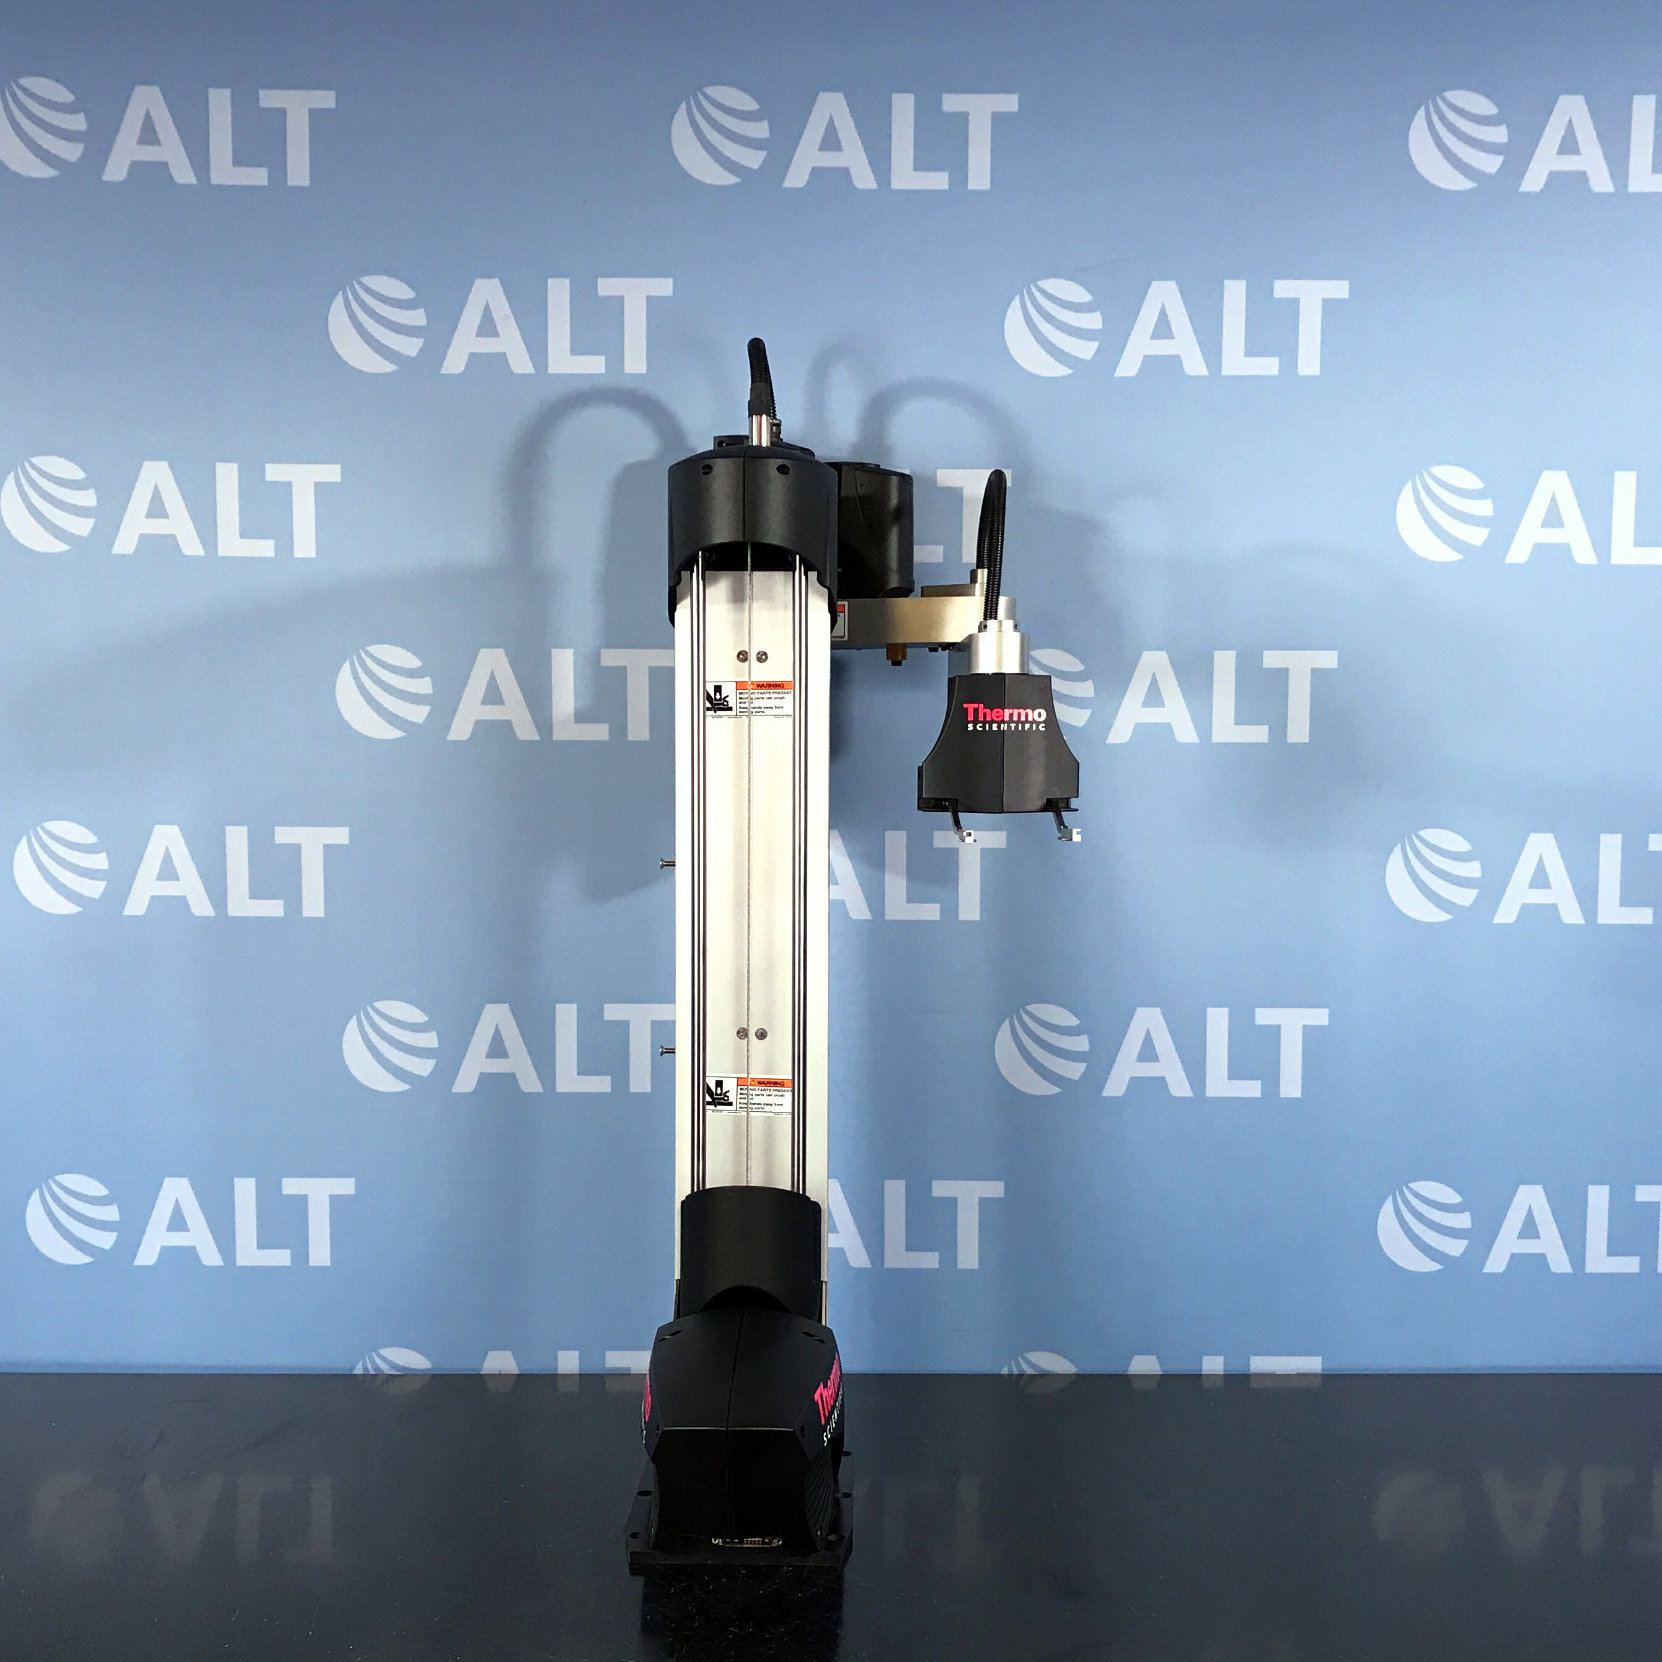 Thermo Scientific CRS VAL (Vertical Array Loader) Robotic Arm 33